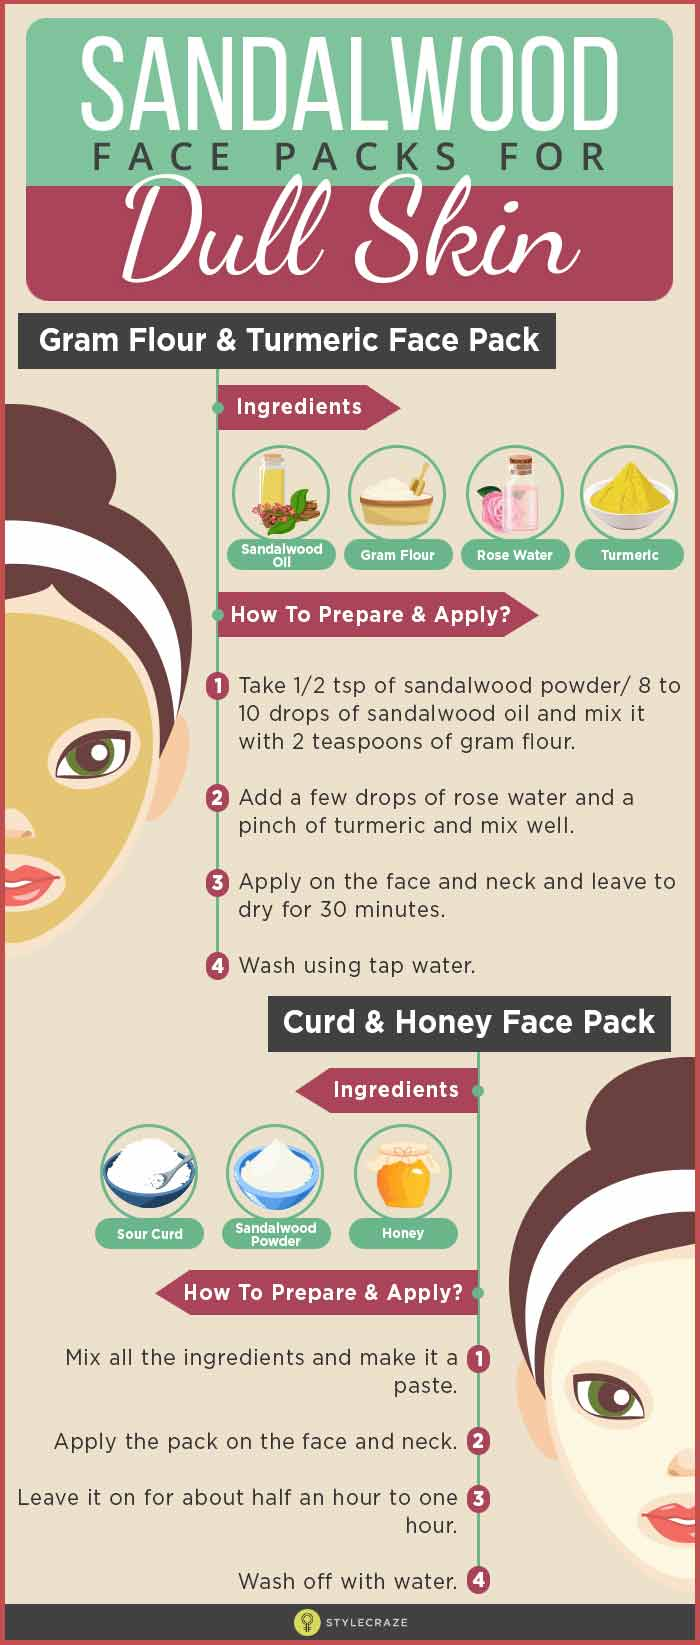 Sandalwood Face Packs For Dull Skin